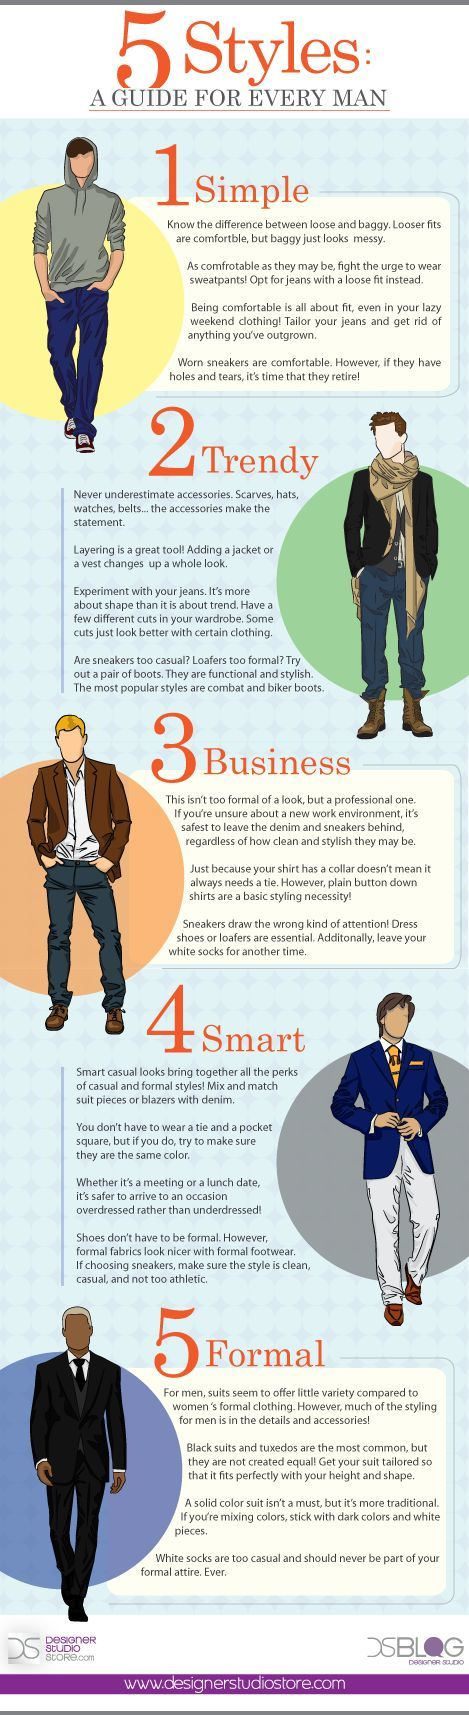 From #casual to #formal, here are some men's #StyleTips to looking and feeling your best!